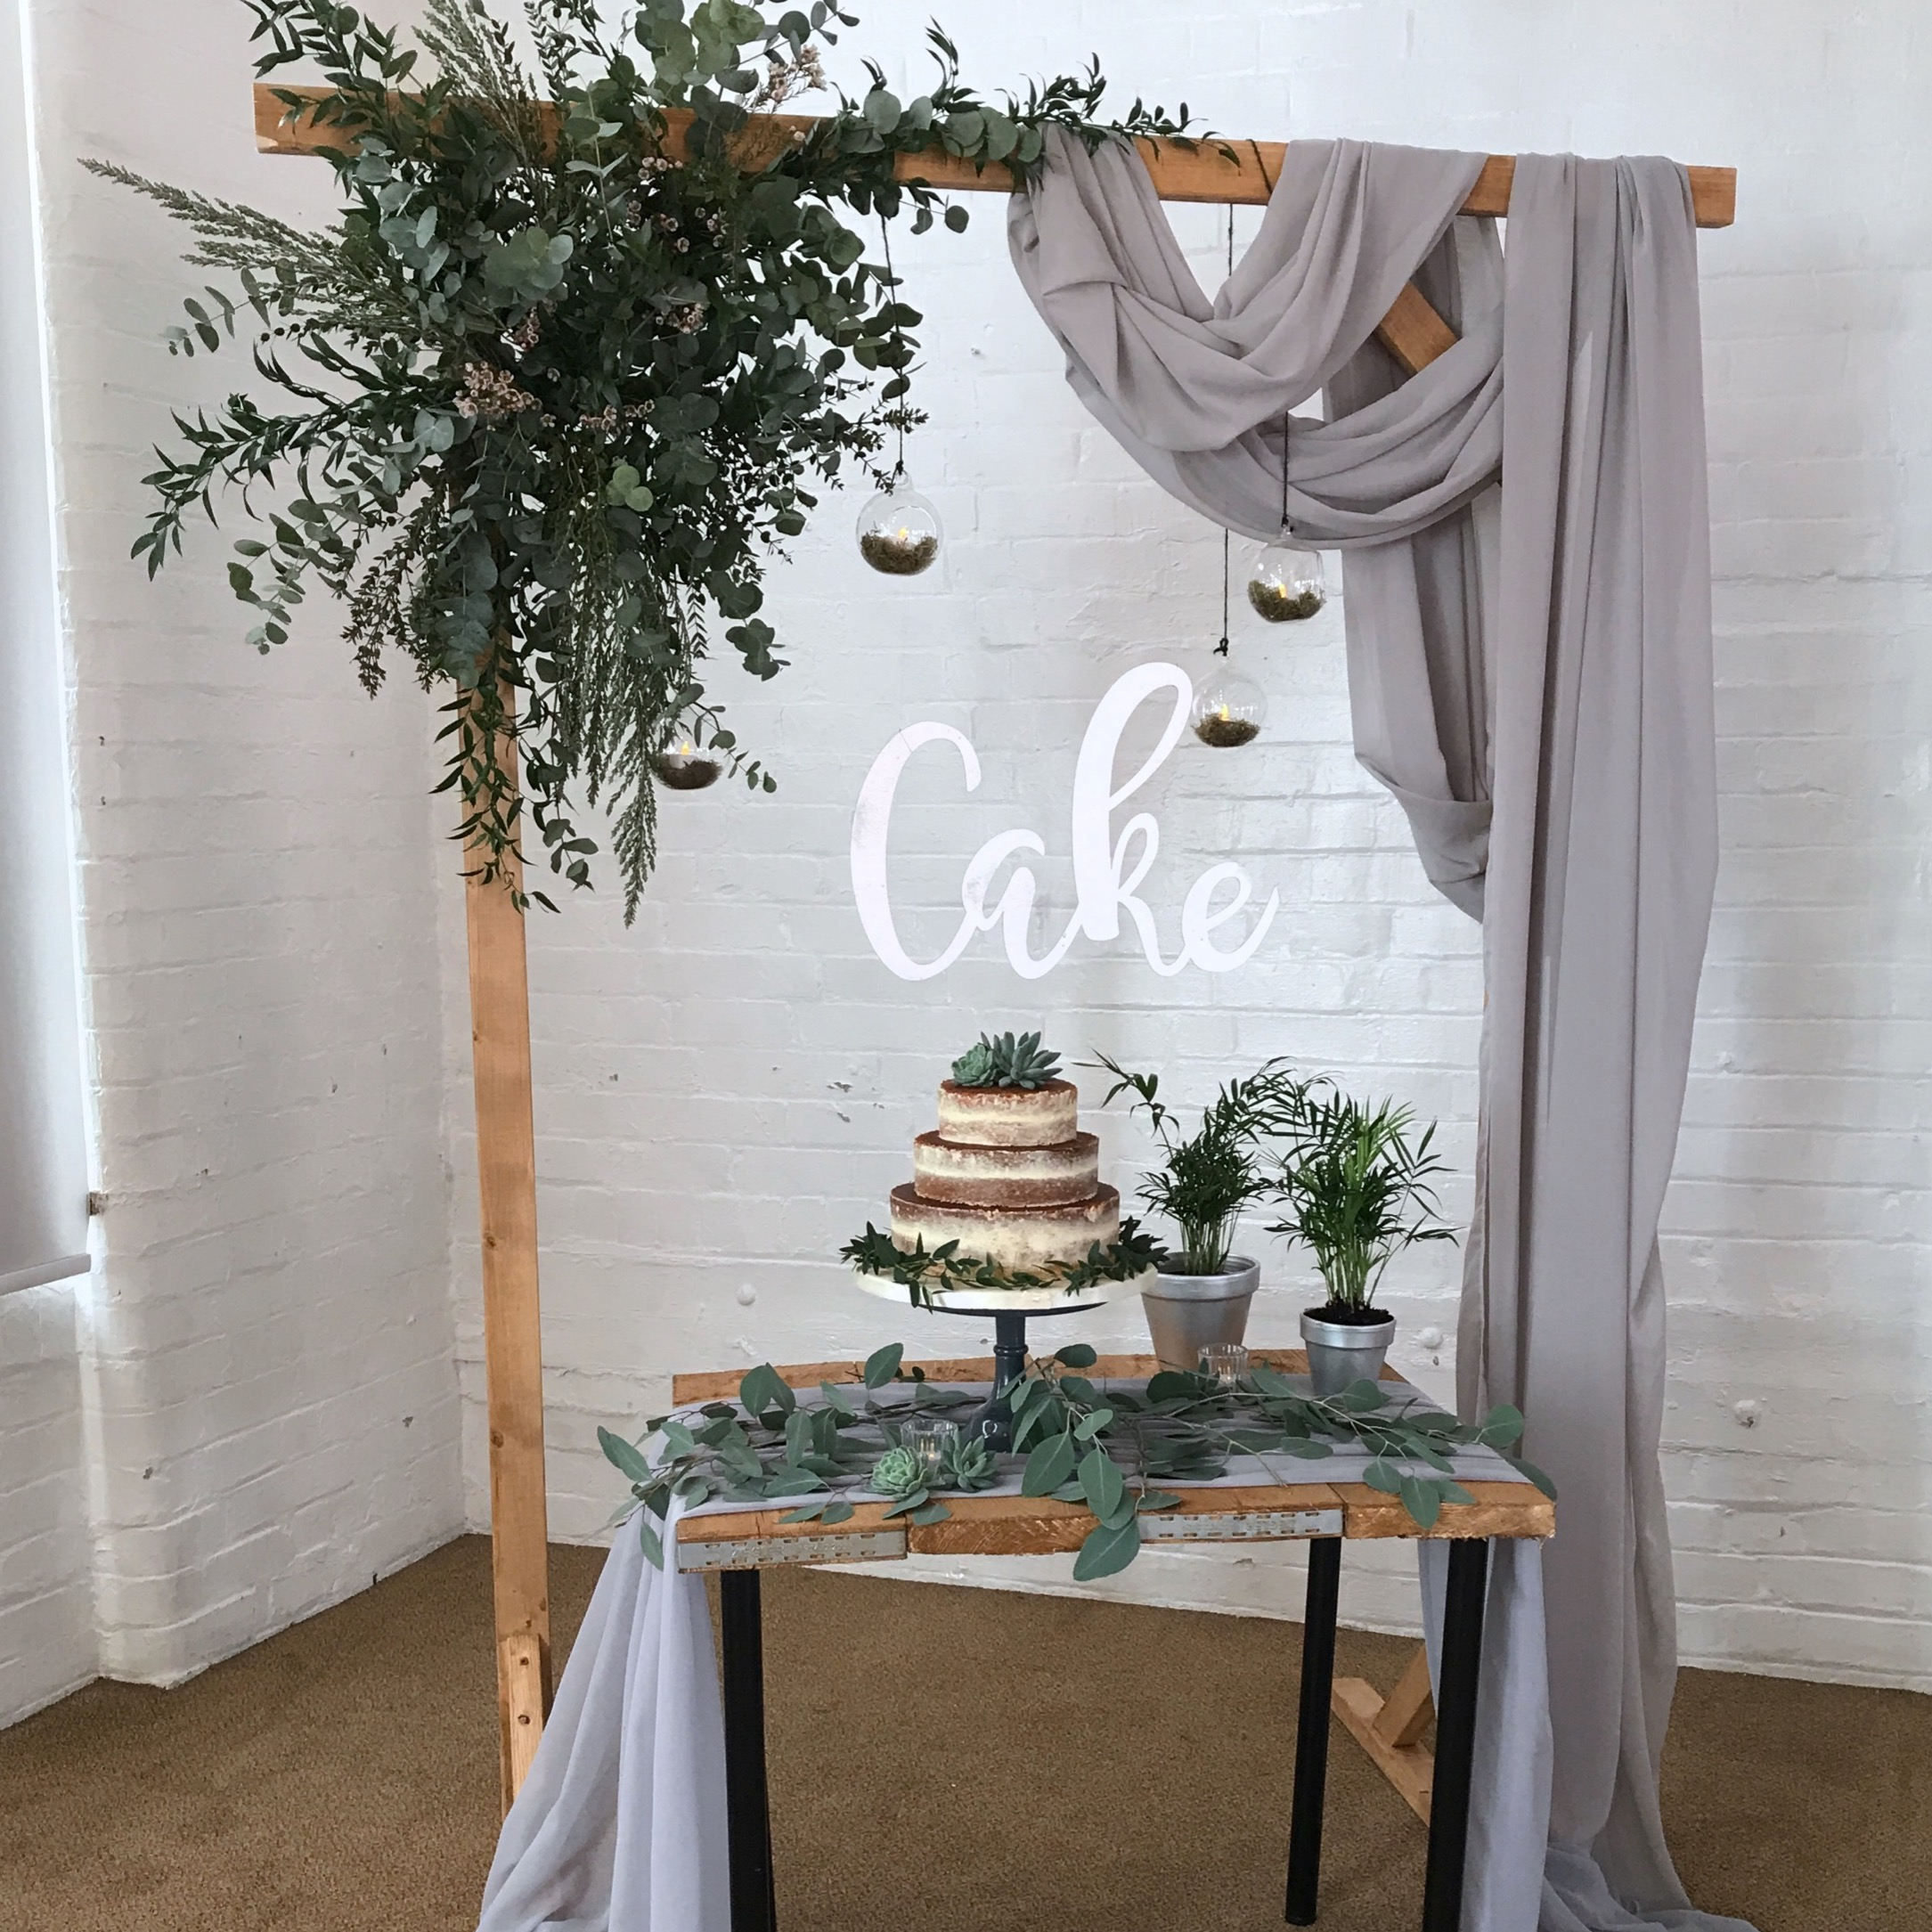 DRAPERY CAKE DISPLAY